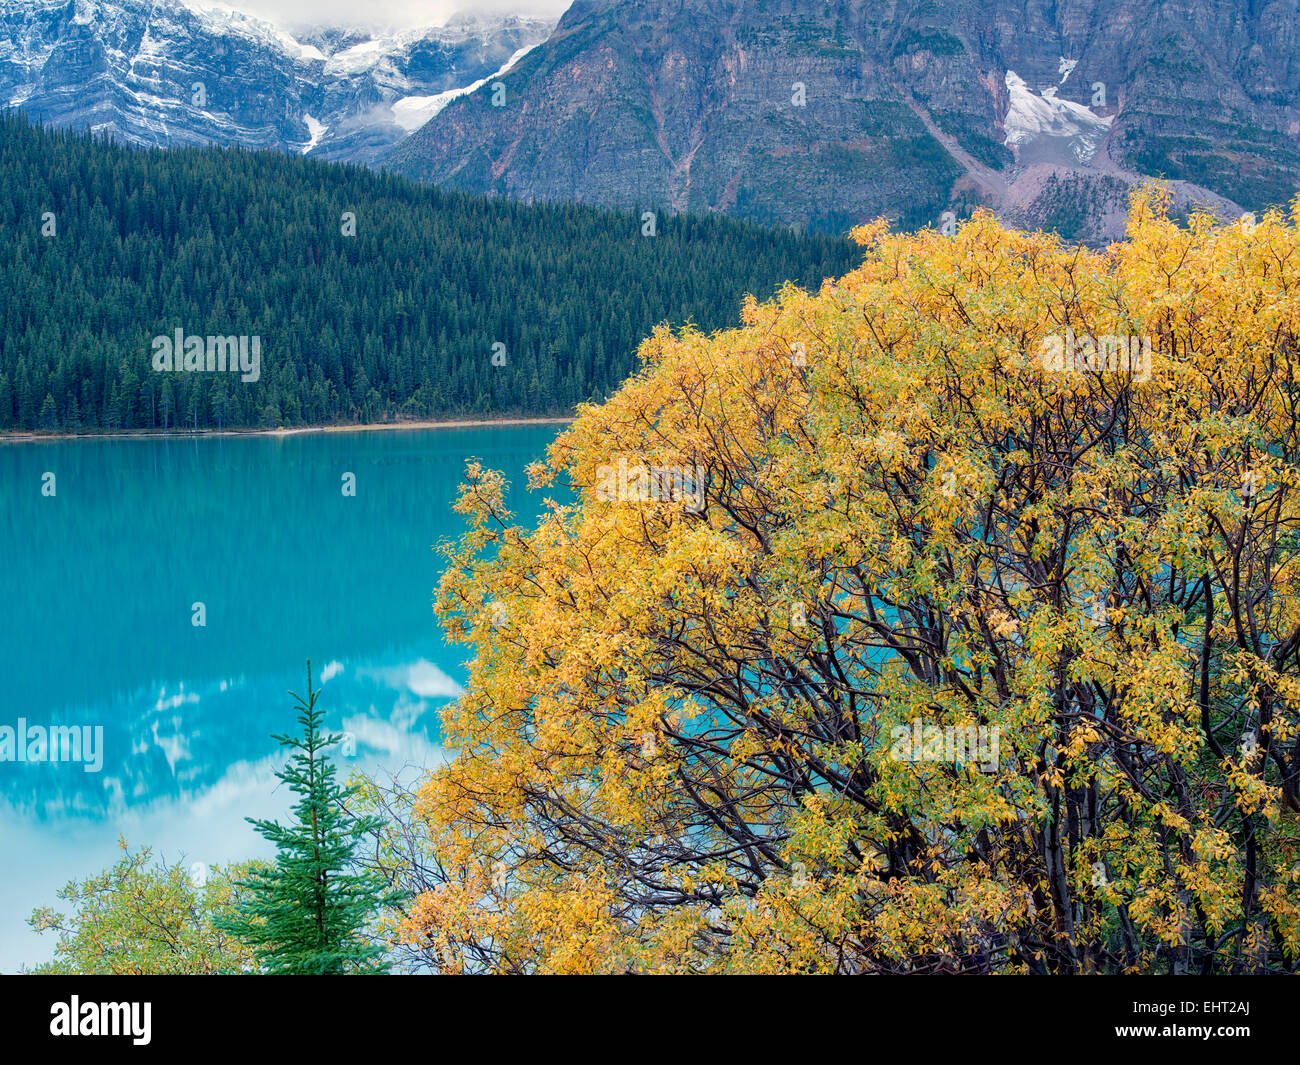 Willow tree in fall color and Waterfowl Lakes. Banff National Park, Alberta, Canada - Stock Image